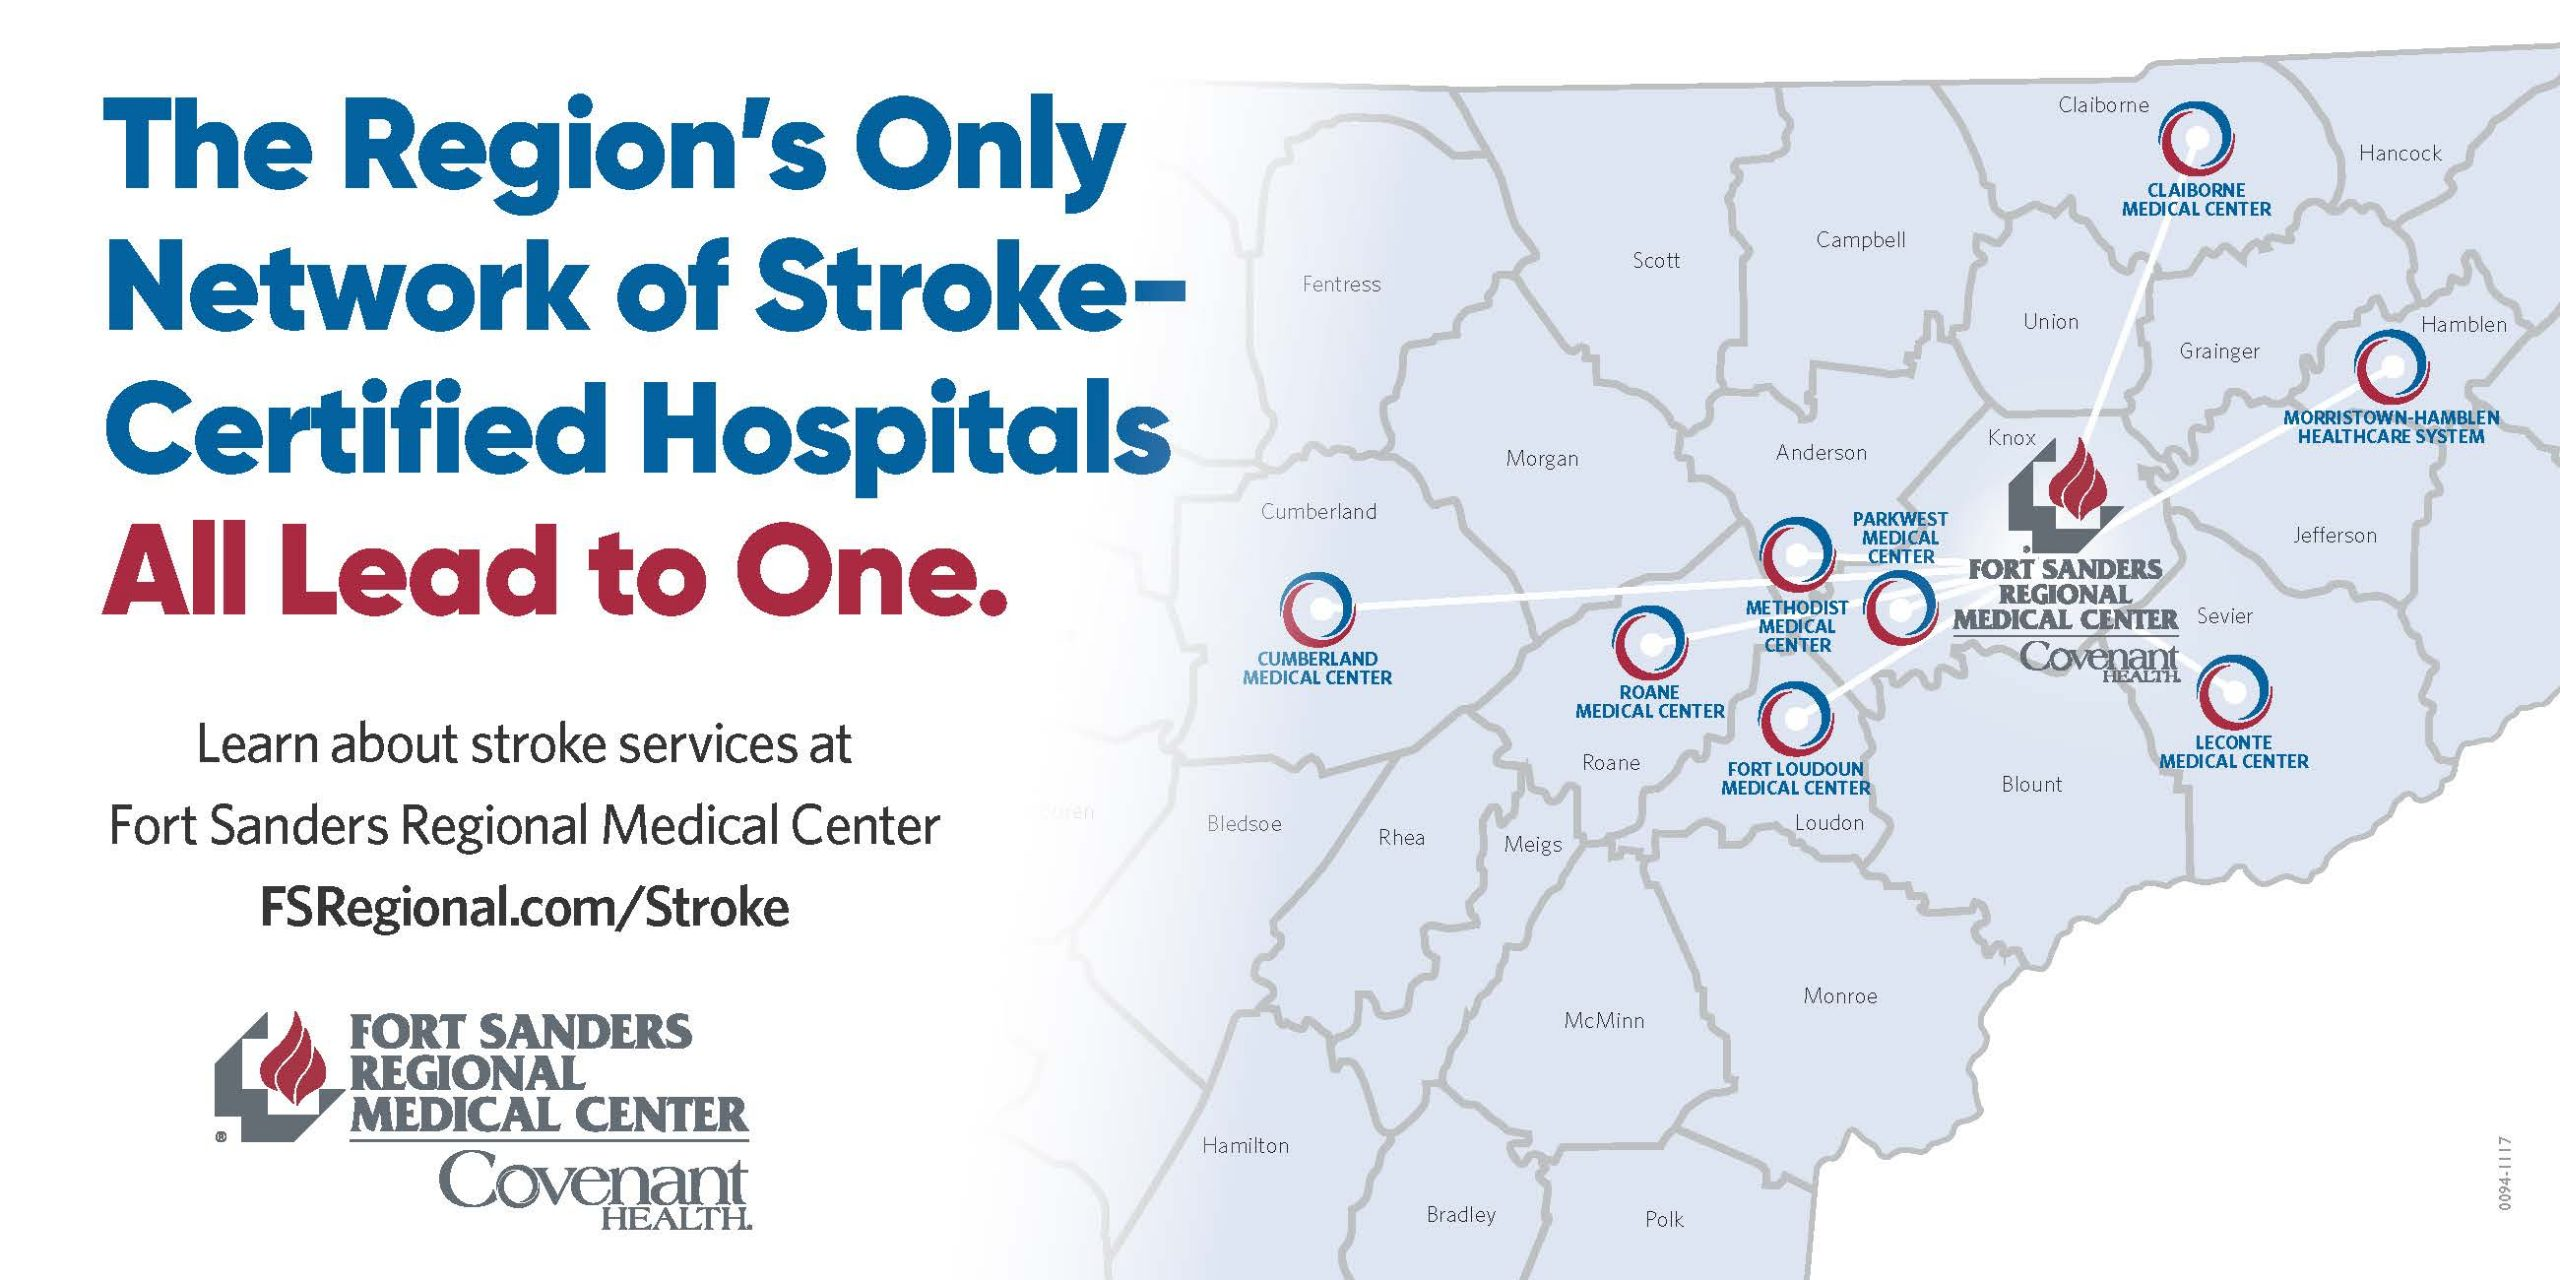 The region's only network of stroke-certified hospitals all lead to one.